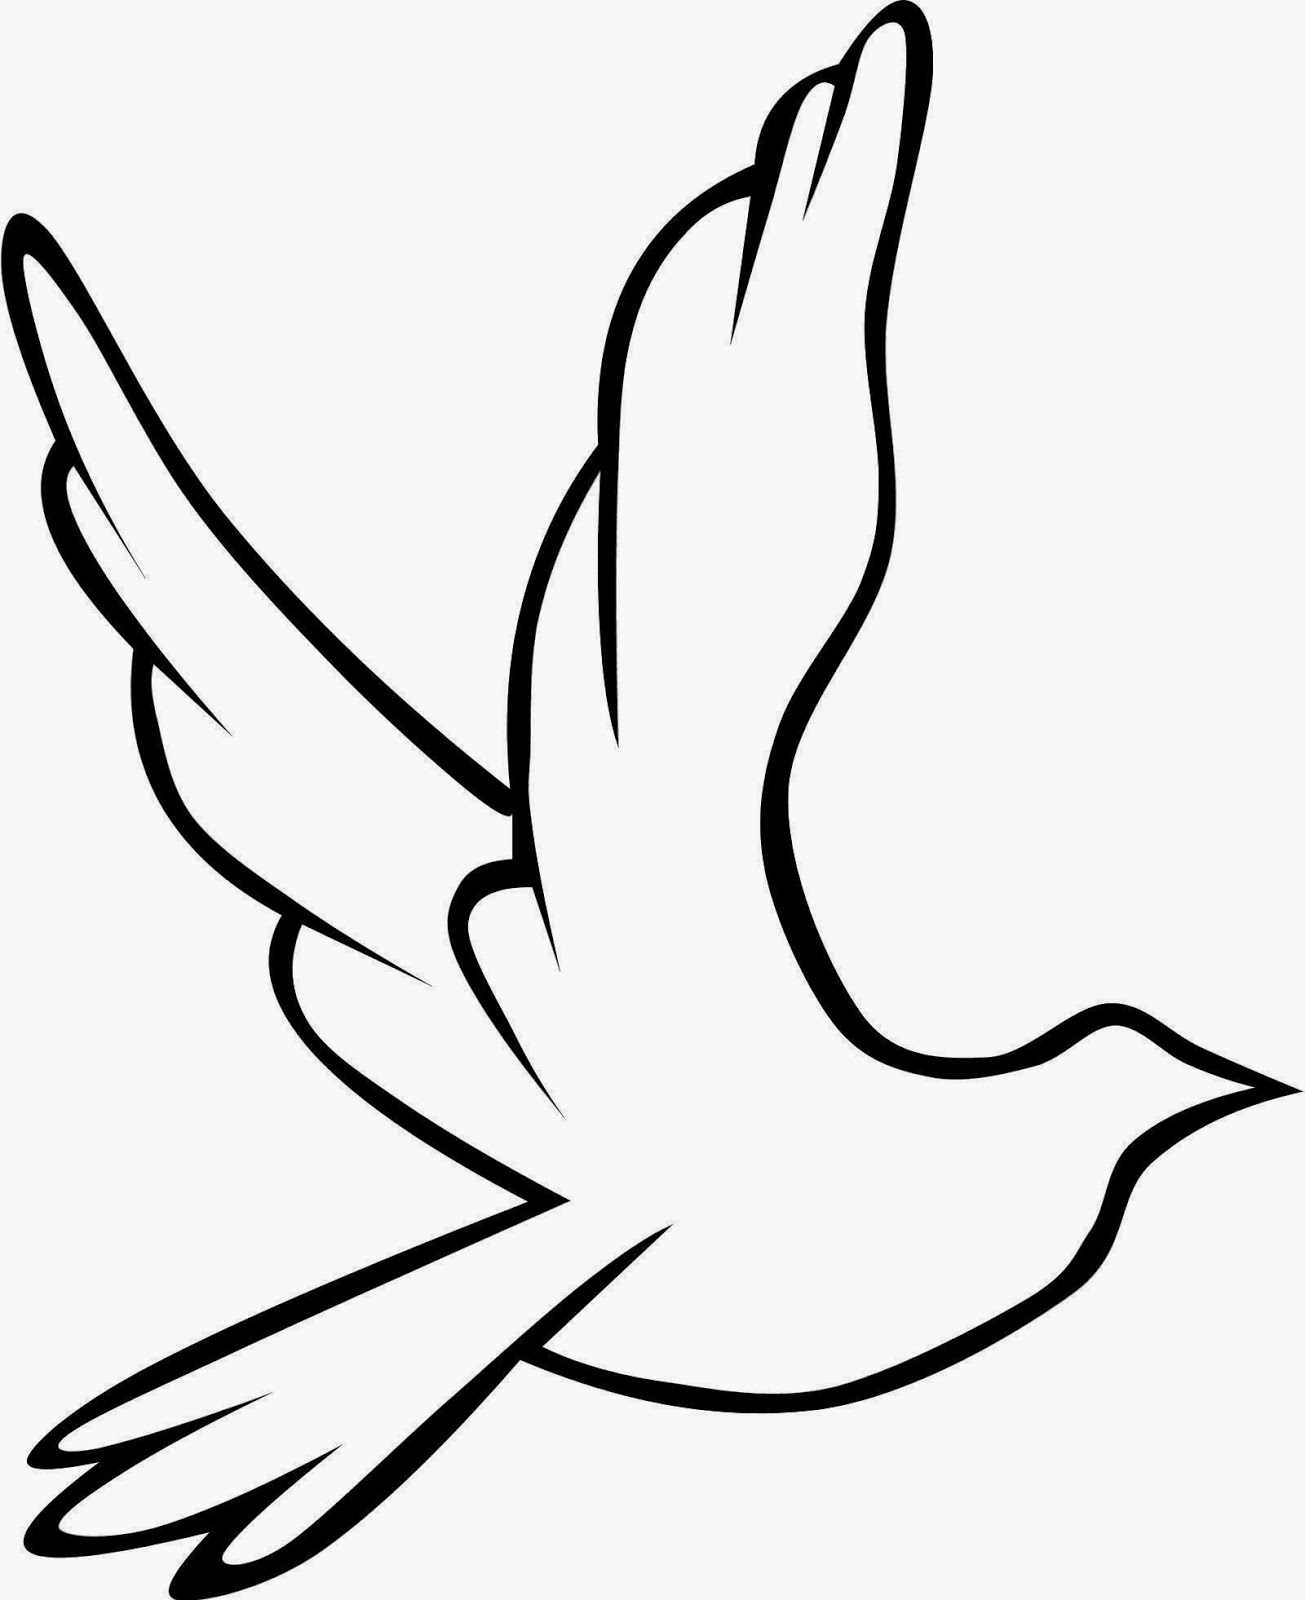 Free printable coloring pages peace sign - Free Printable Coloring Pages Peace Sign 24